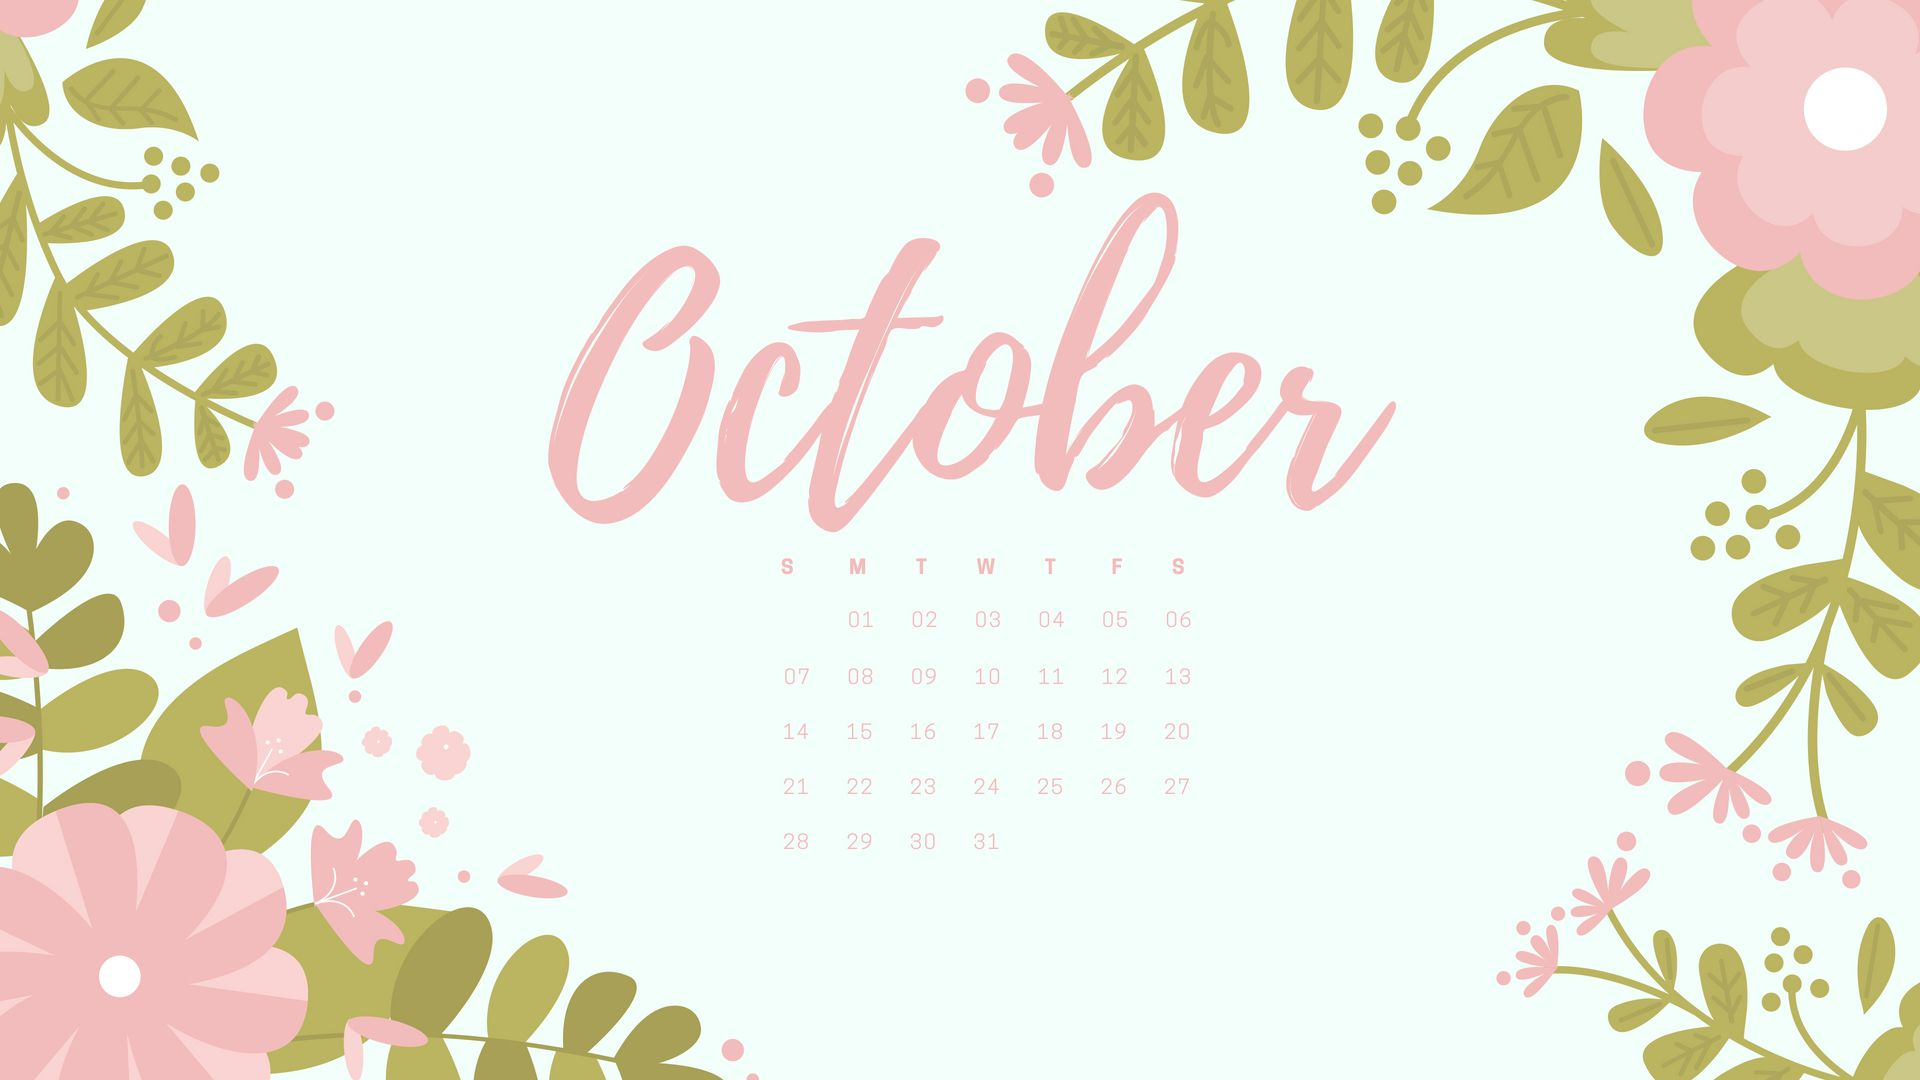 Cute Calendar Wallpaper : Cute october calendar wall floral pink designs images